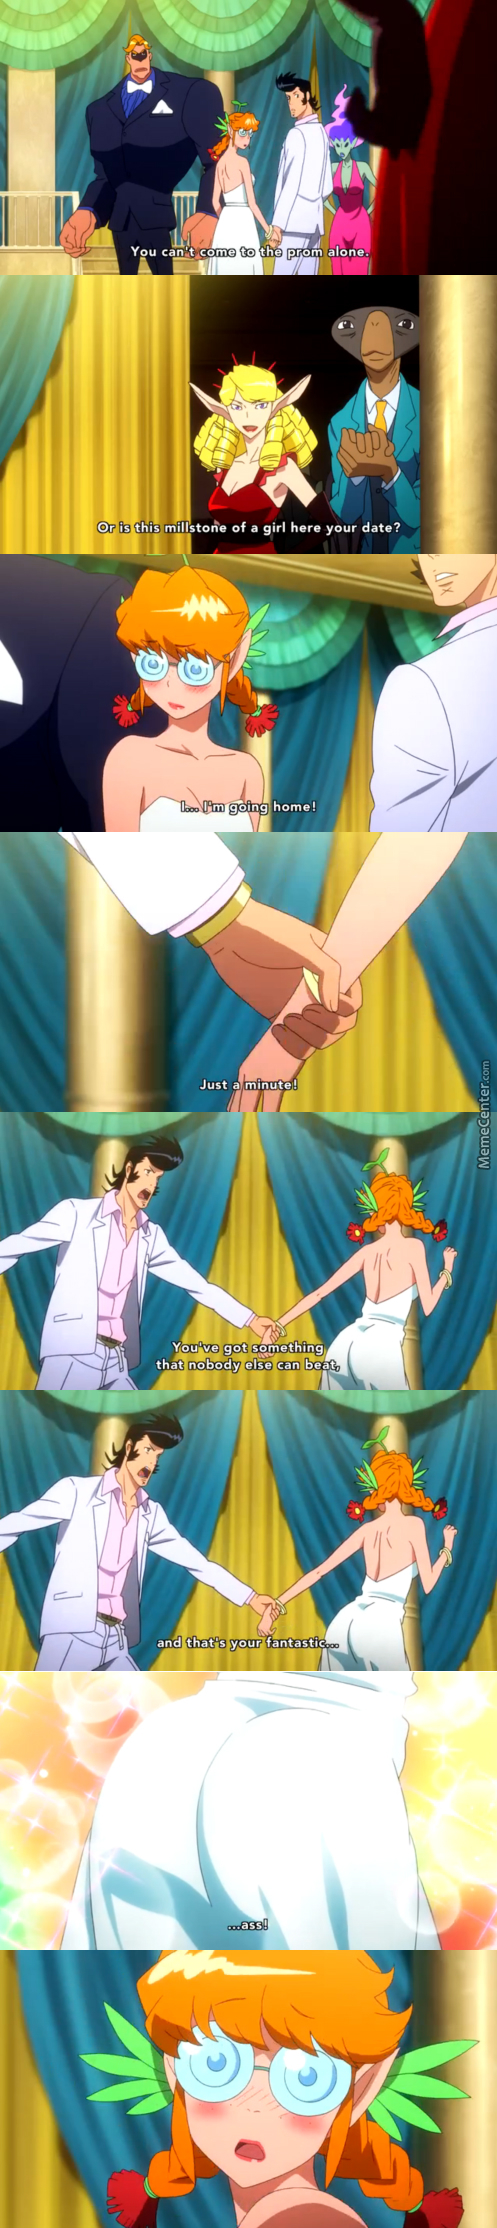 Smooth Dandy. (Anime: Space Dandy )